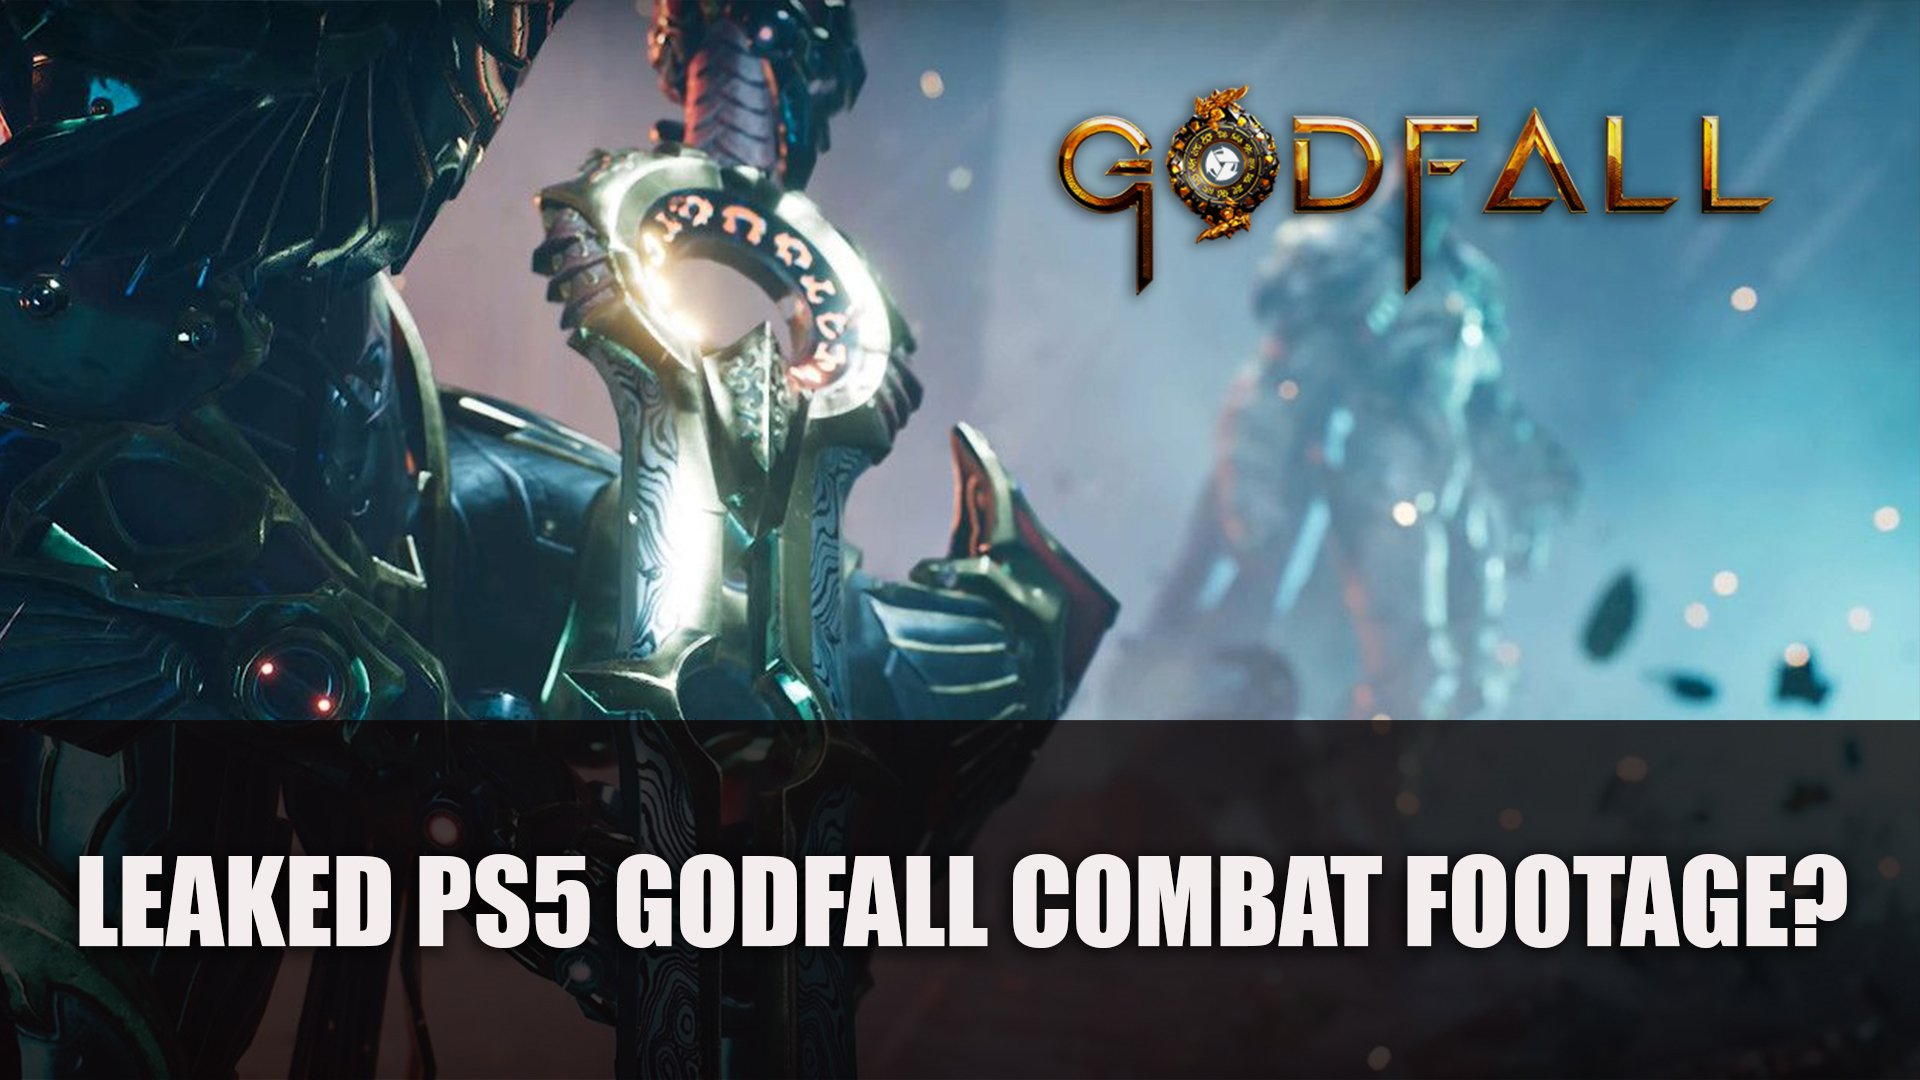 Ps5 Godfall Combat Footage Leaked Fextralife